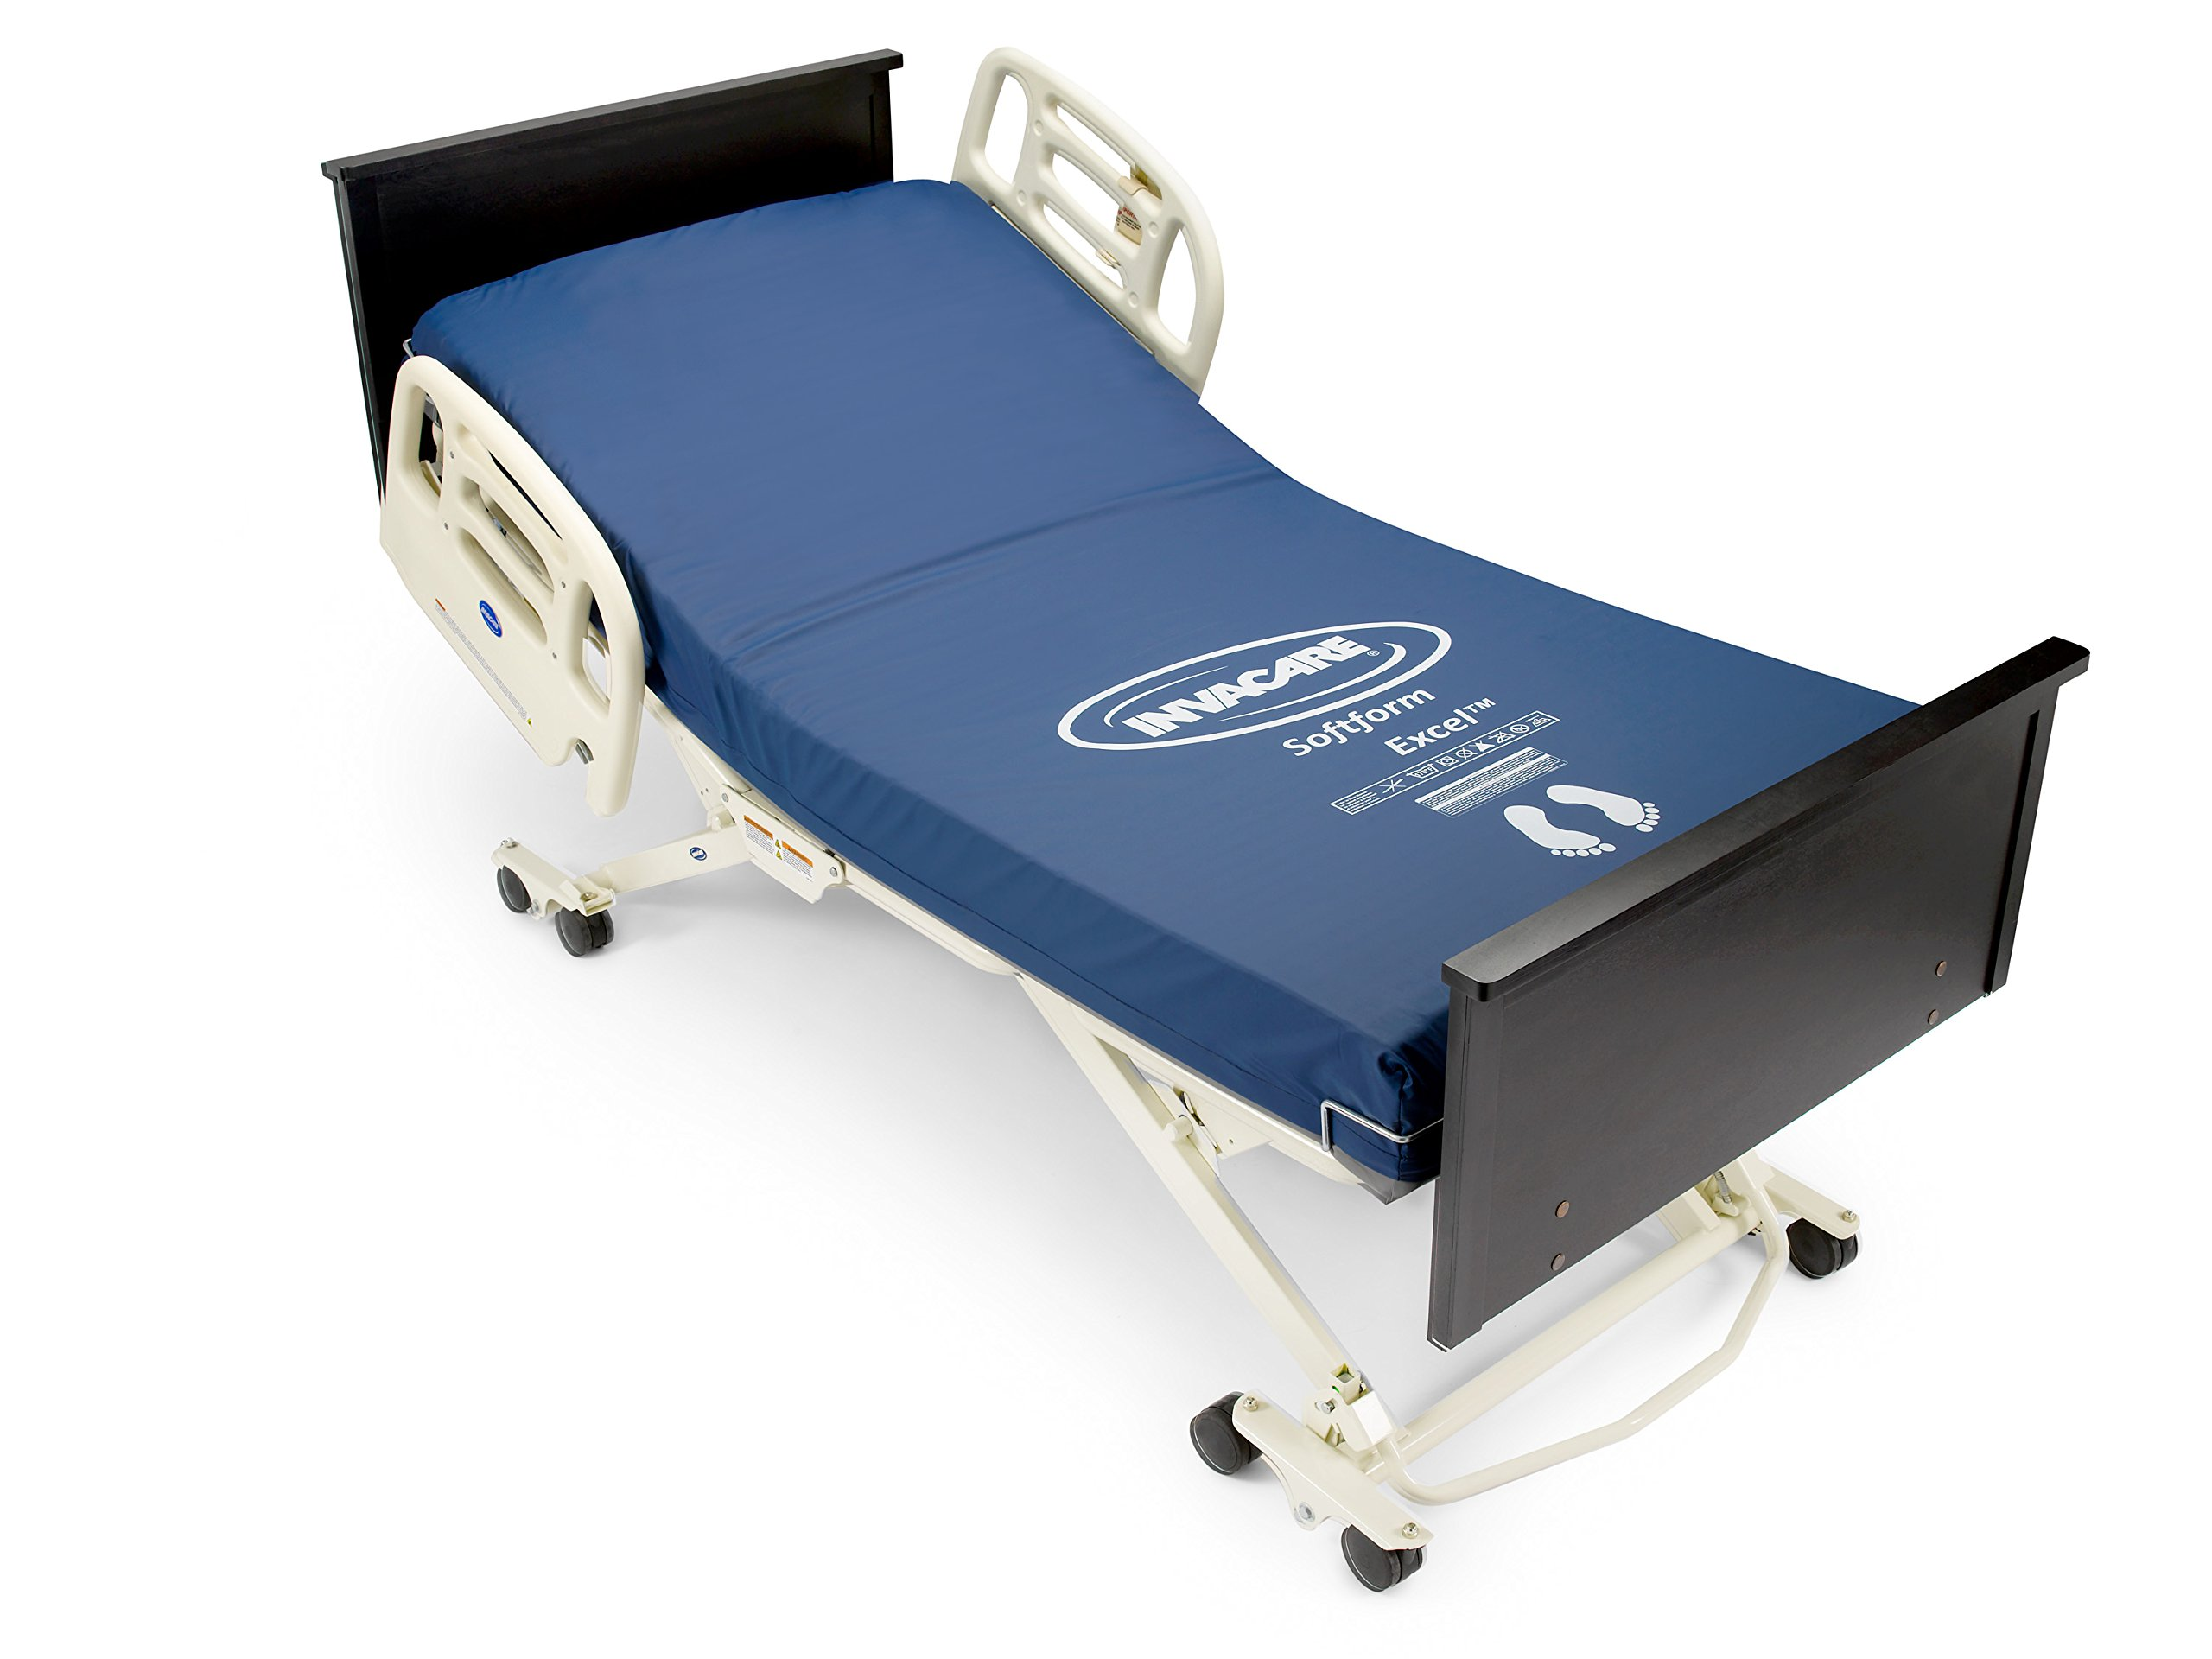 Invacare Softform Excel Mattress, 80 x 36 x 6 inches, countoured Foam Layer, IXL1080 by Invacare (Image #3)